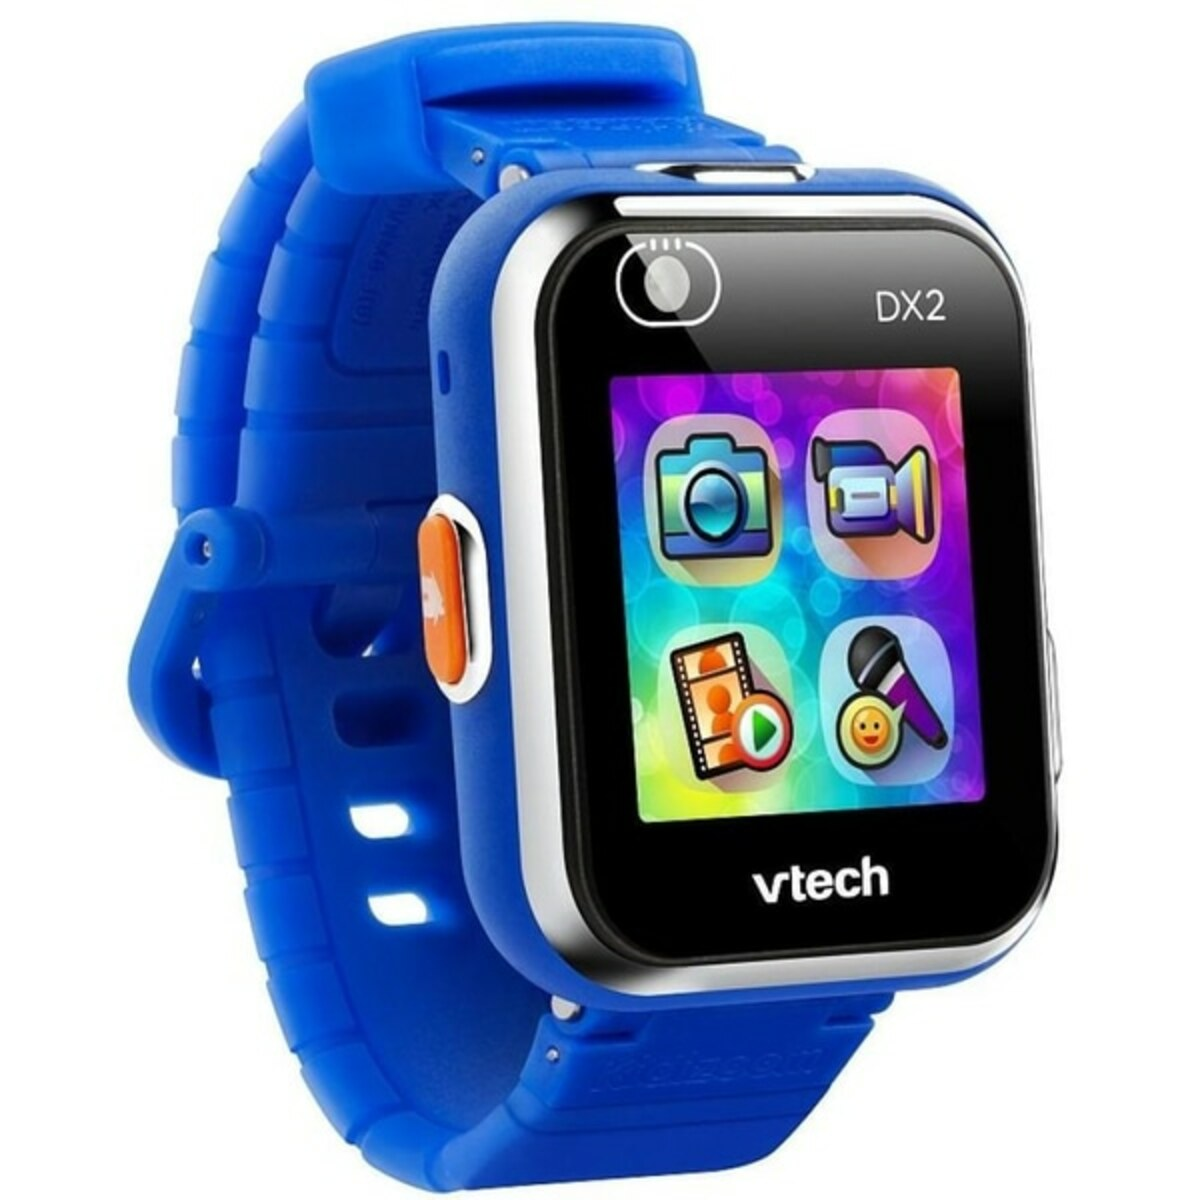 Bild 1 von VTech - Kidizoom: Smart Watch DX2, blau